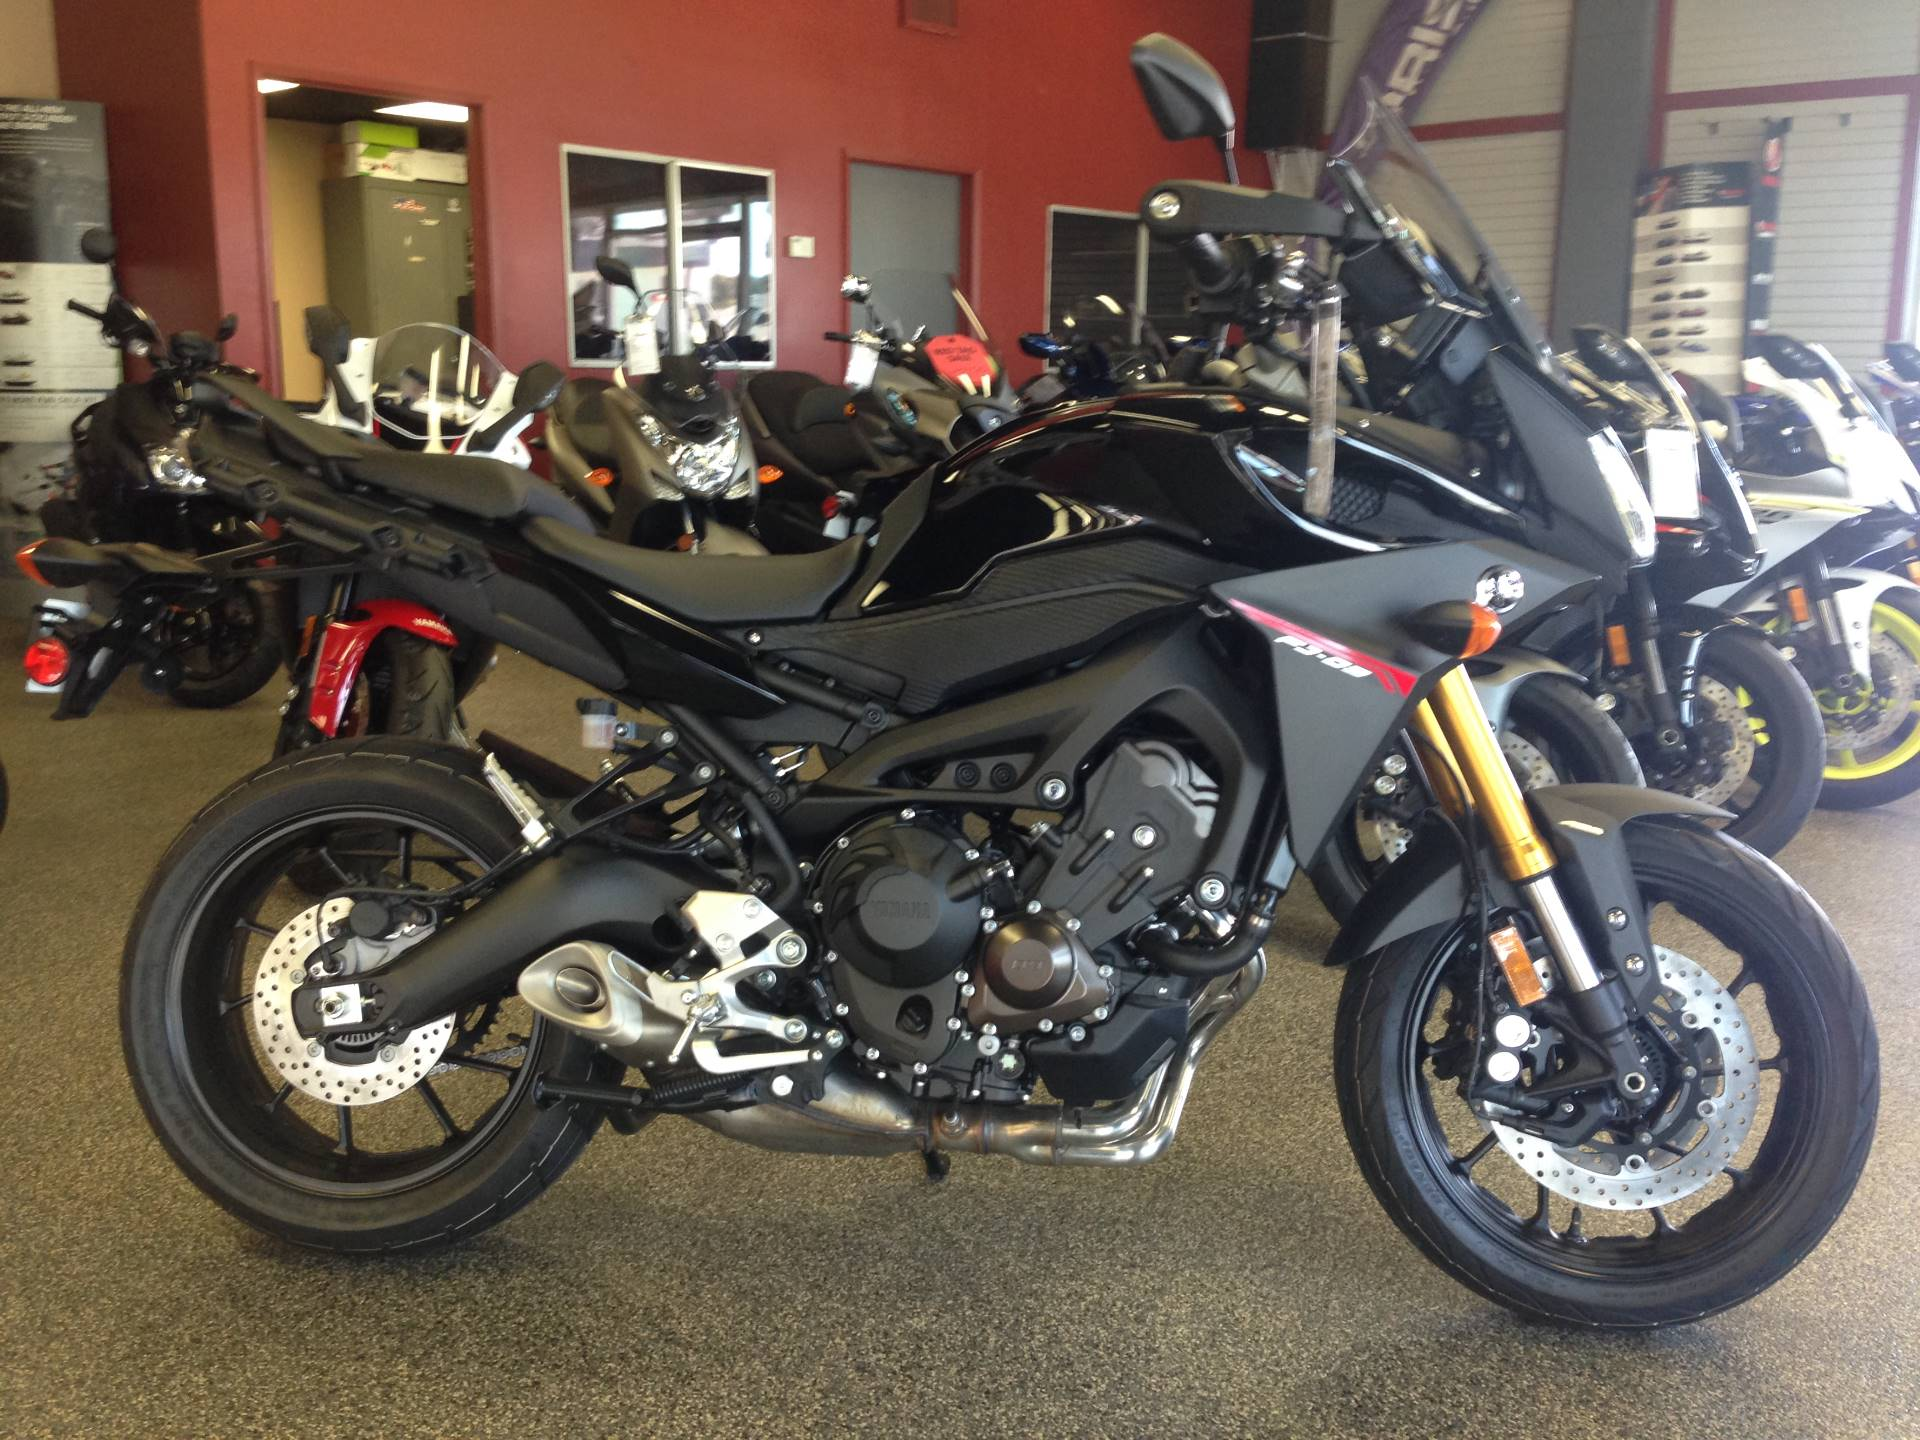 2016 Yamaha FJ-09 for sale 1610